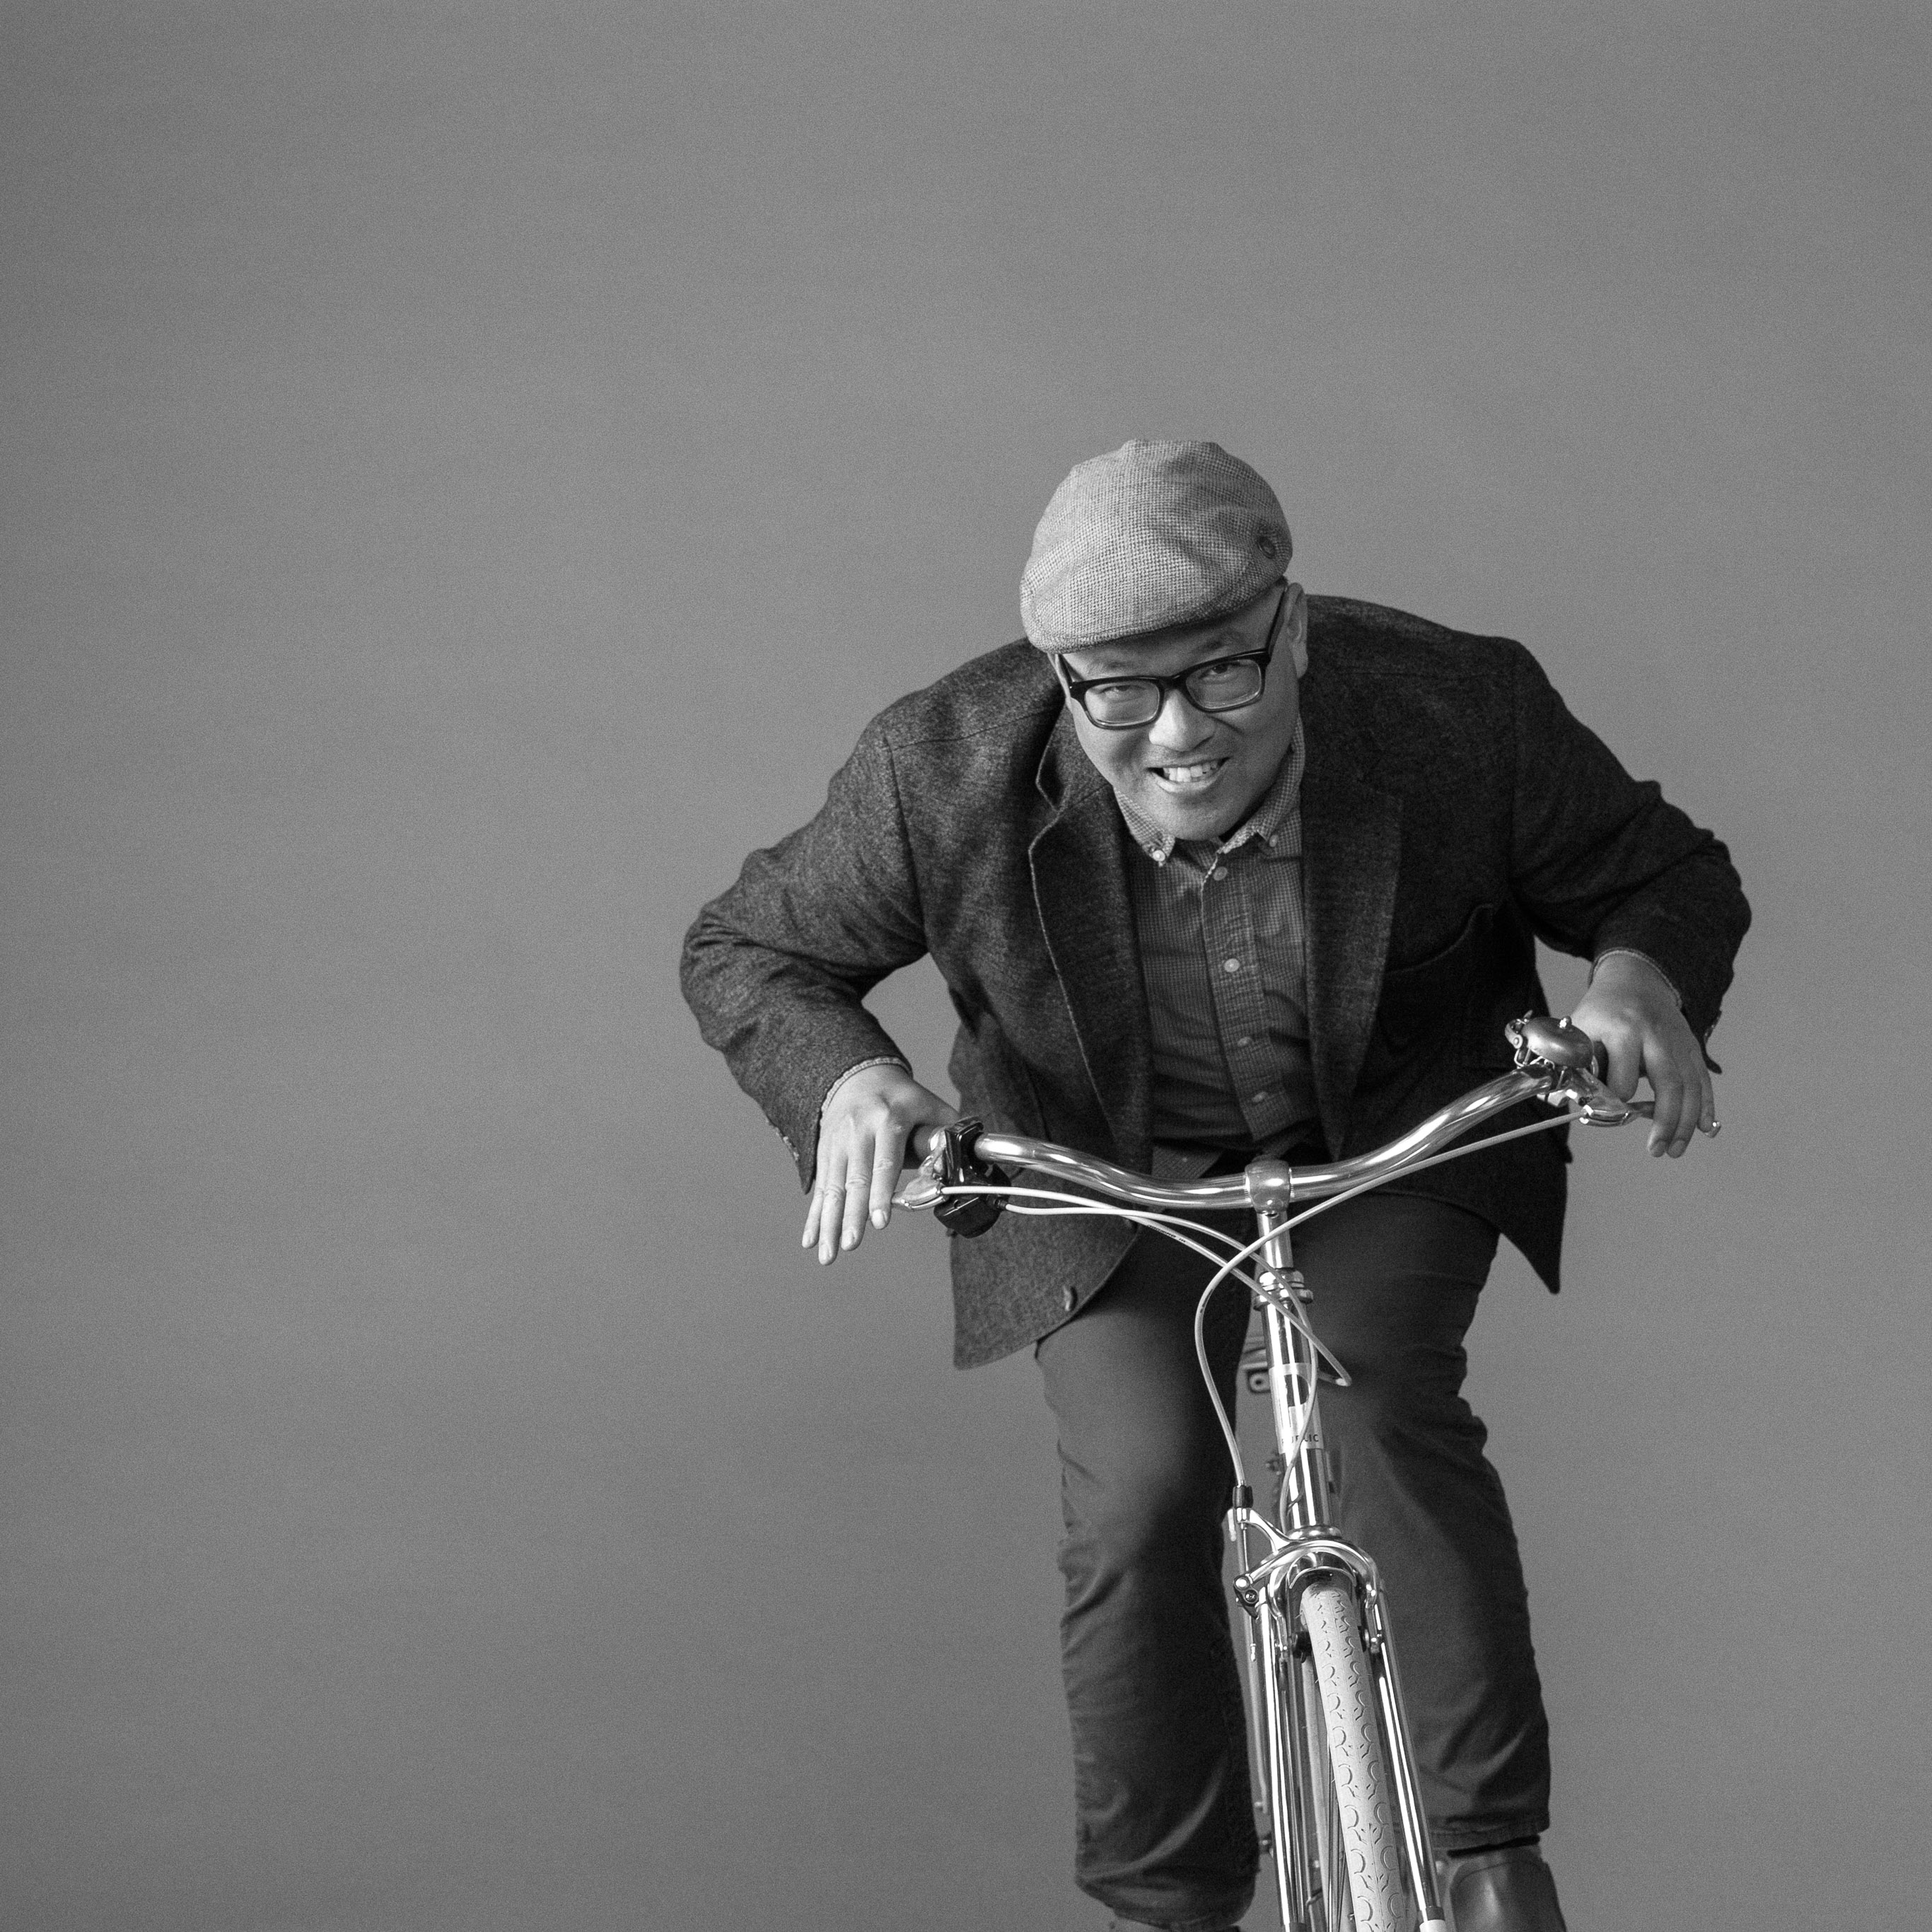 San Francisco portrait photographer - Dan Dguyen CEO of Public bicycles rides in my studio